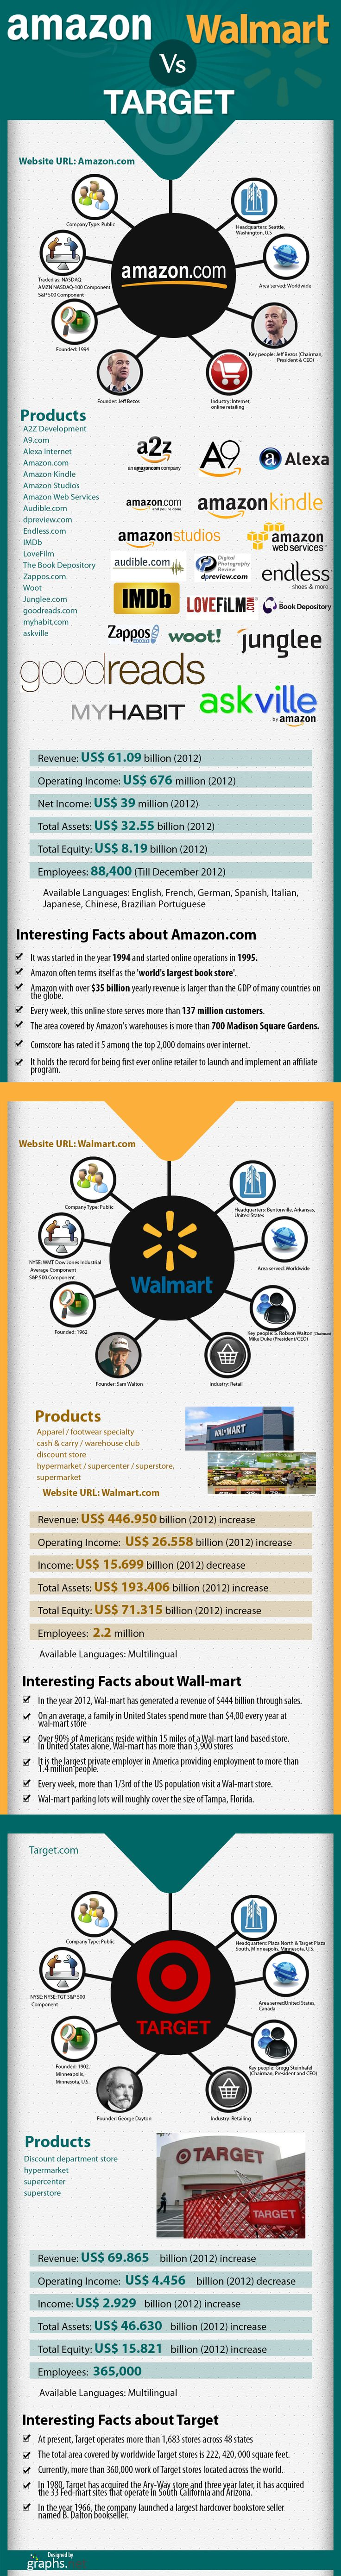 target mission statement vs walmart Wal-mart's vision, mission, and strategy mission statement performance management of walmart.